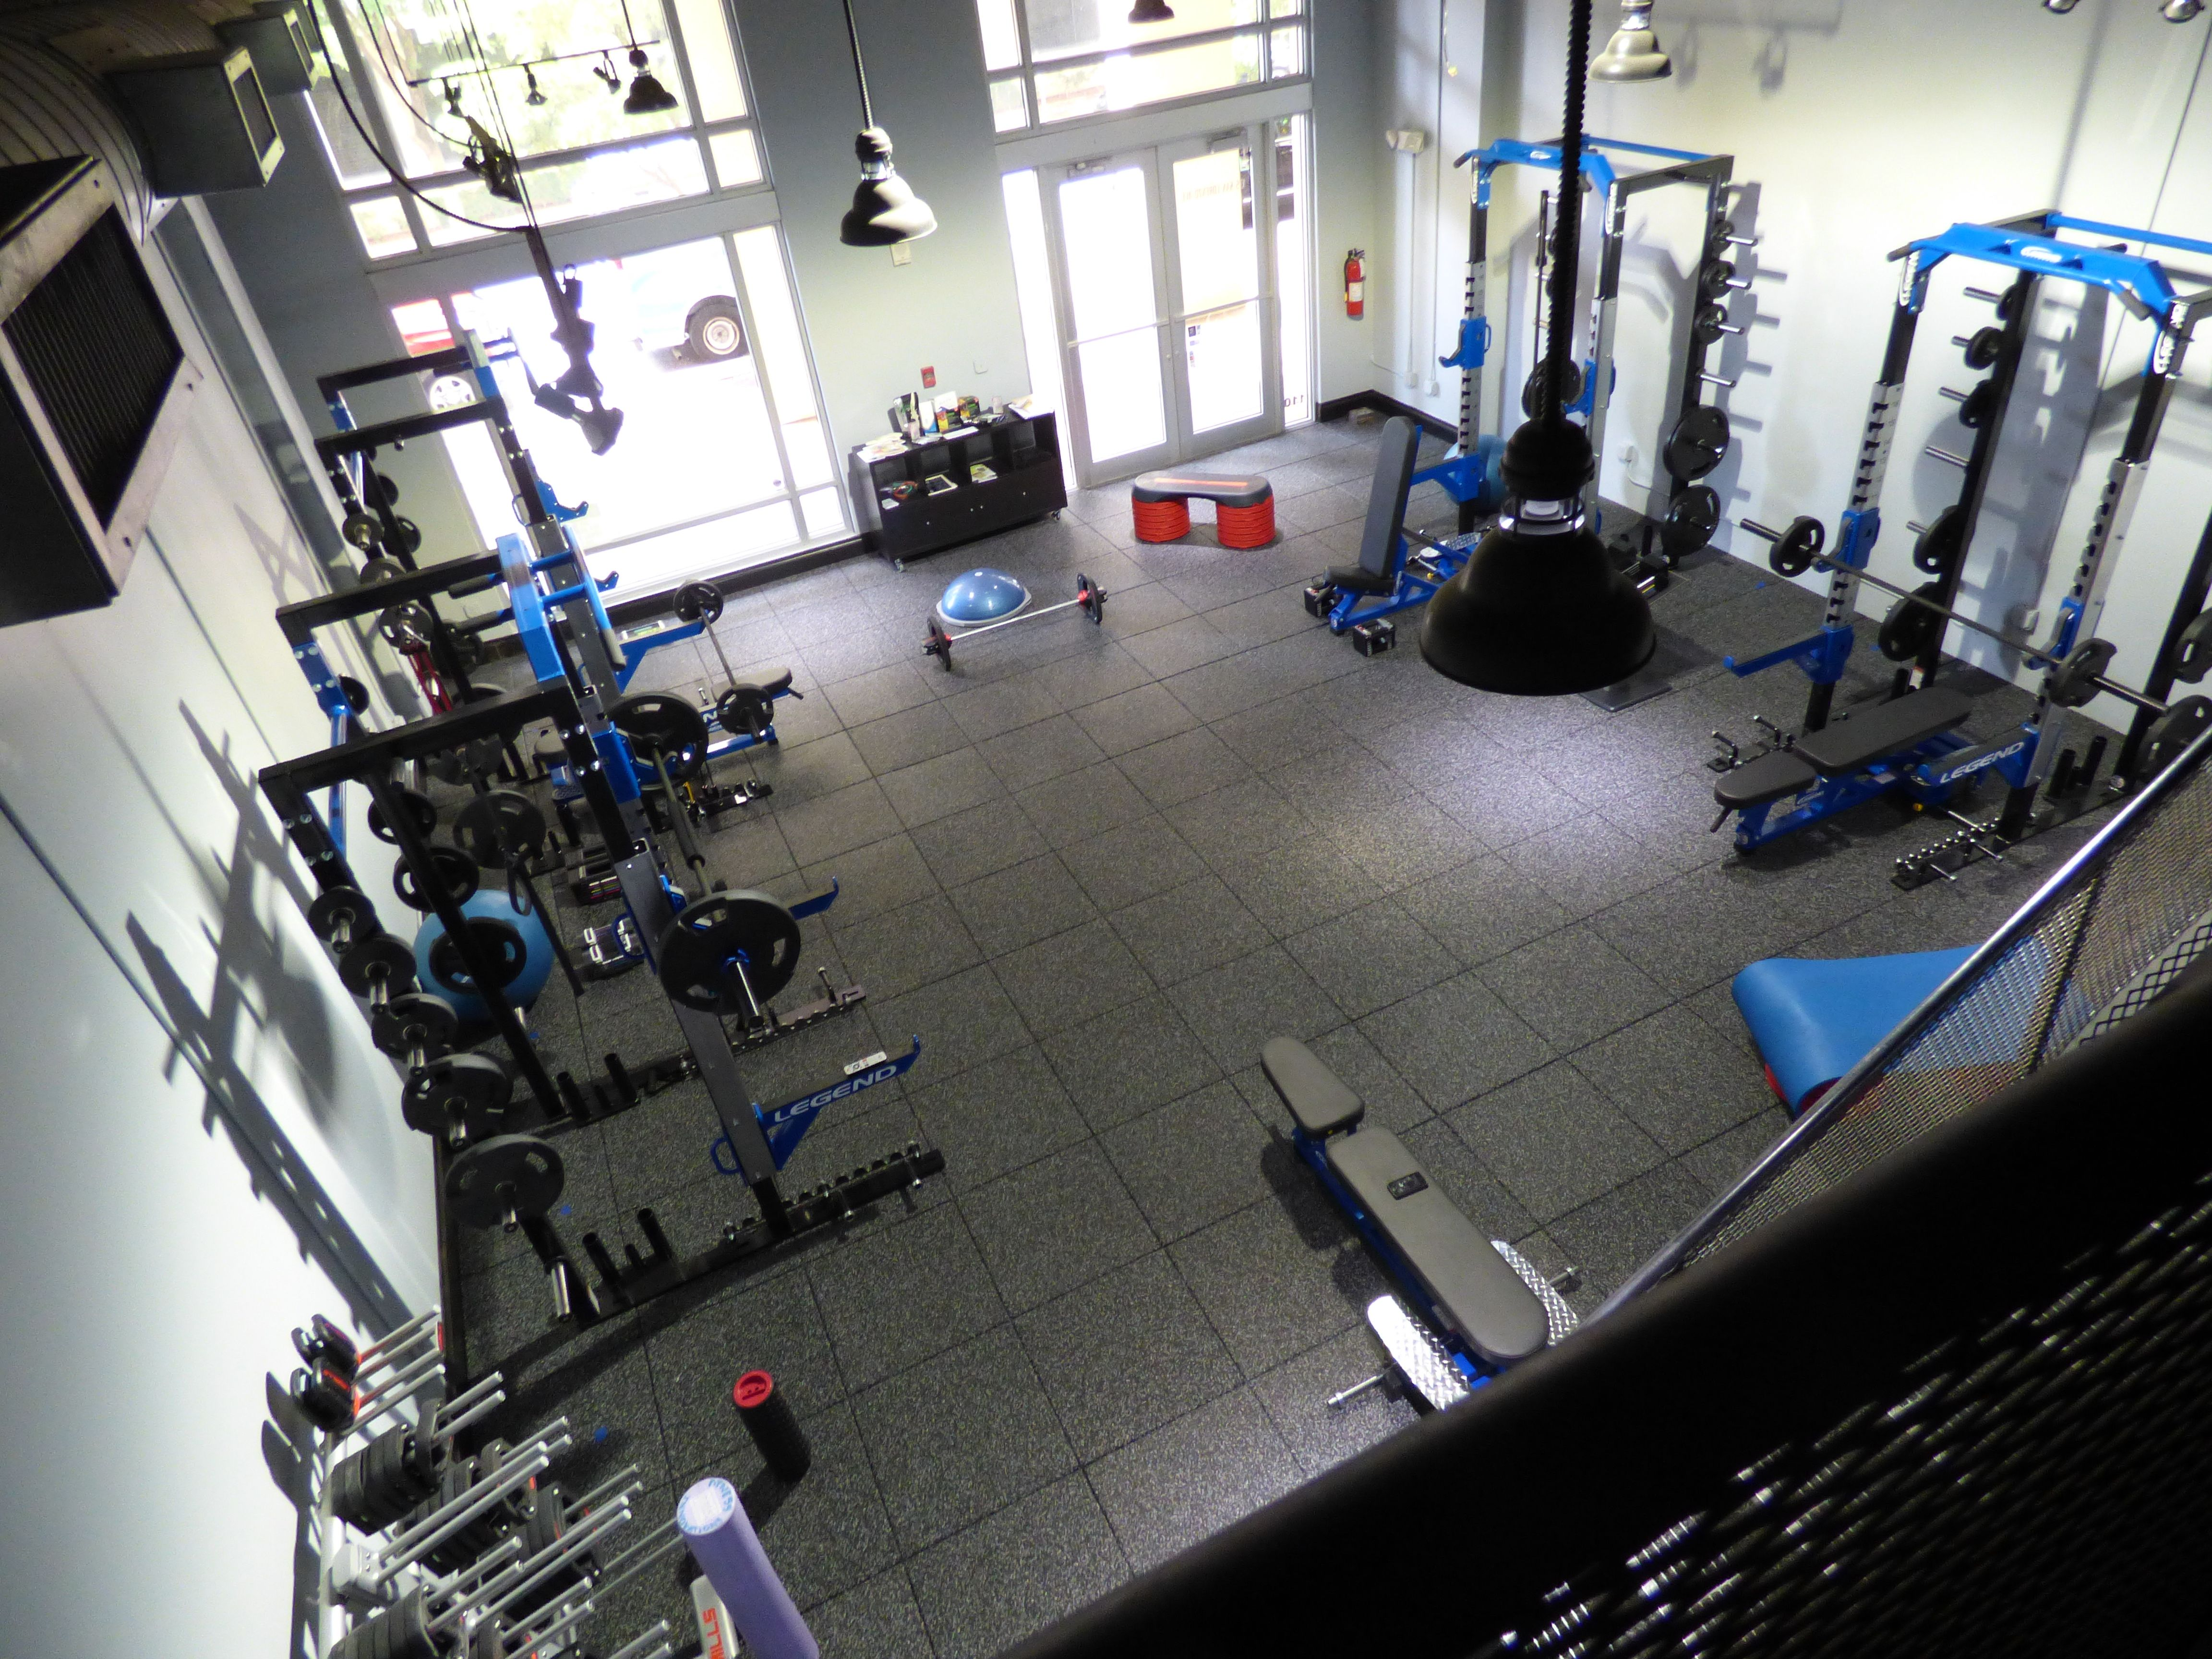 Fitness Innovations Coral Gables Fl Click To Rent By The Hour Getgymspace Findfitnessspace Health Fi Personal Training Studio Group Training Fitness